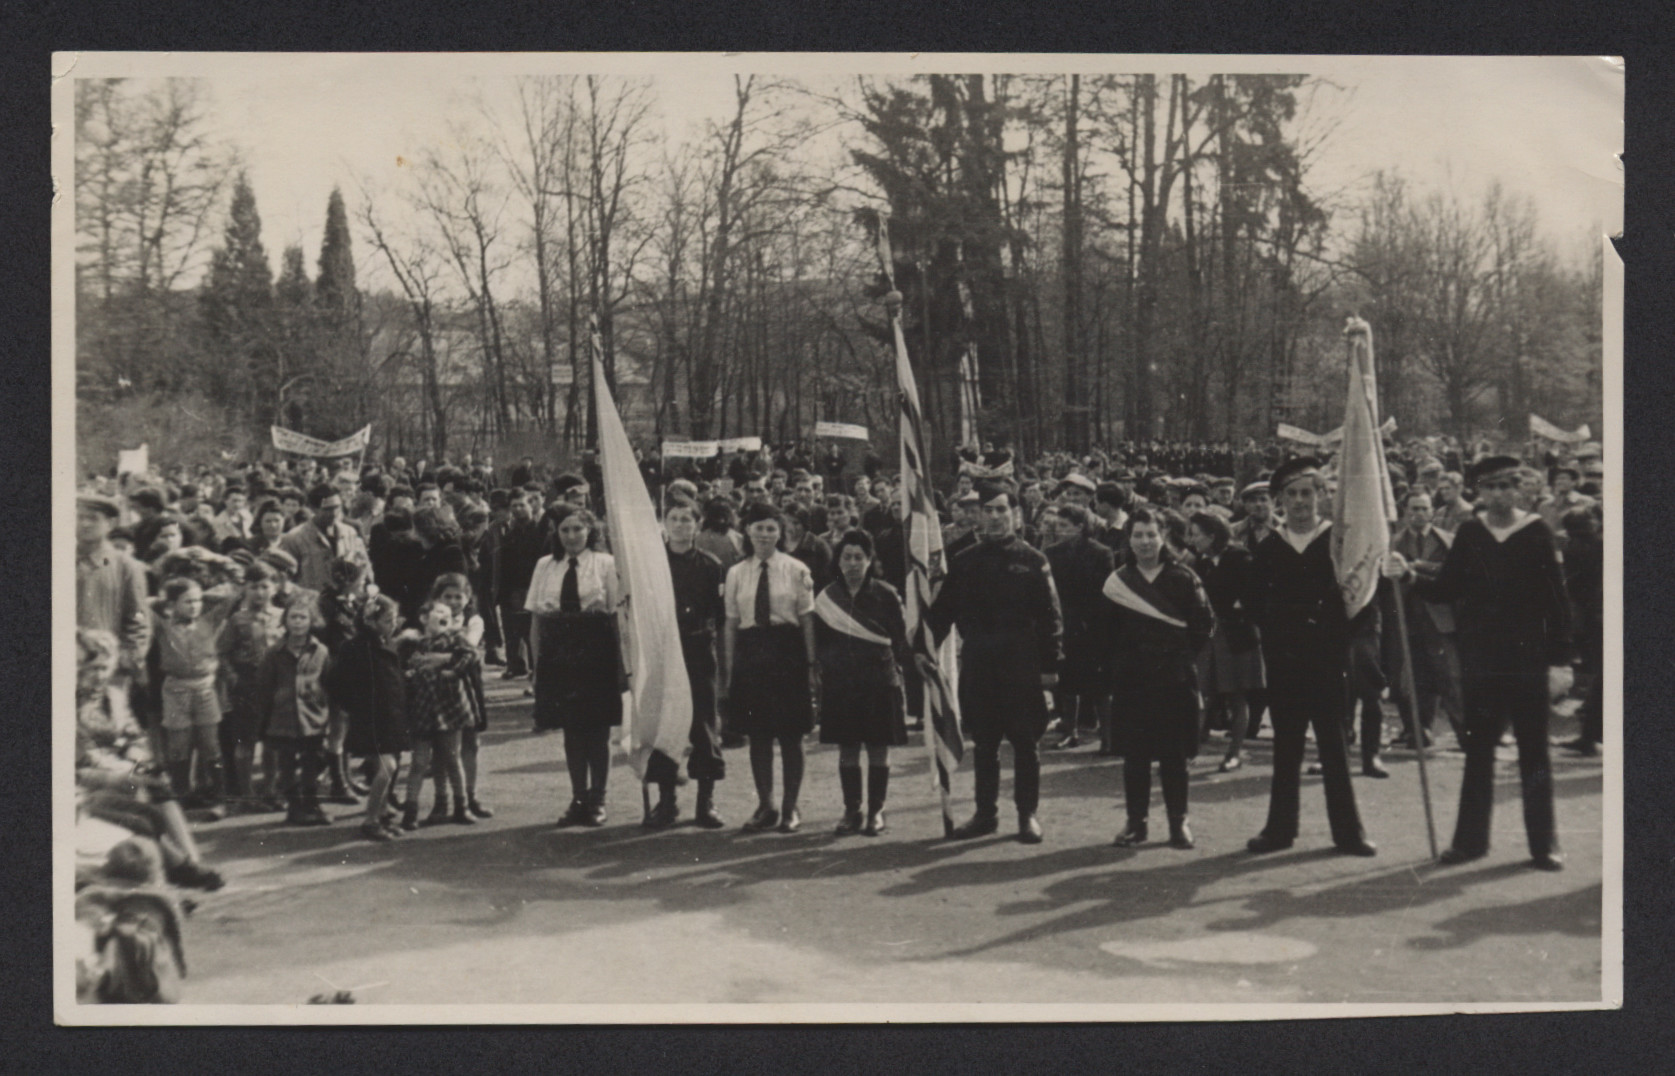 Members of the Betar Zionist youth movement hold a demonstration in the Deggendorf displaced persons camp.  Among those pictured is Lenke Gruenberg.